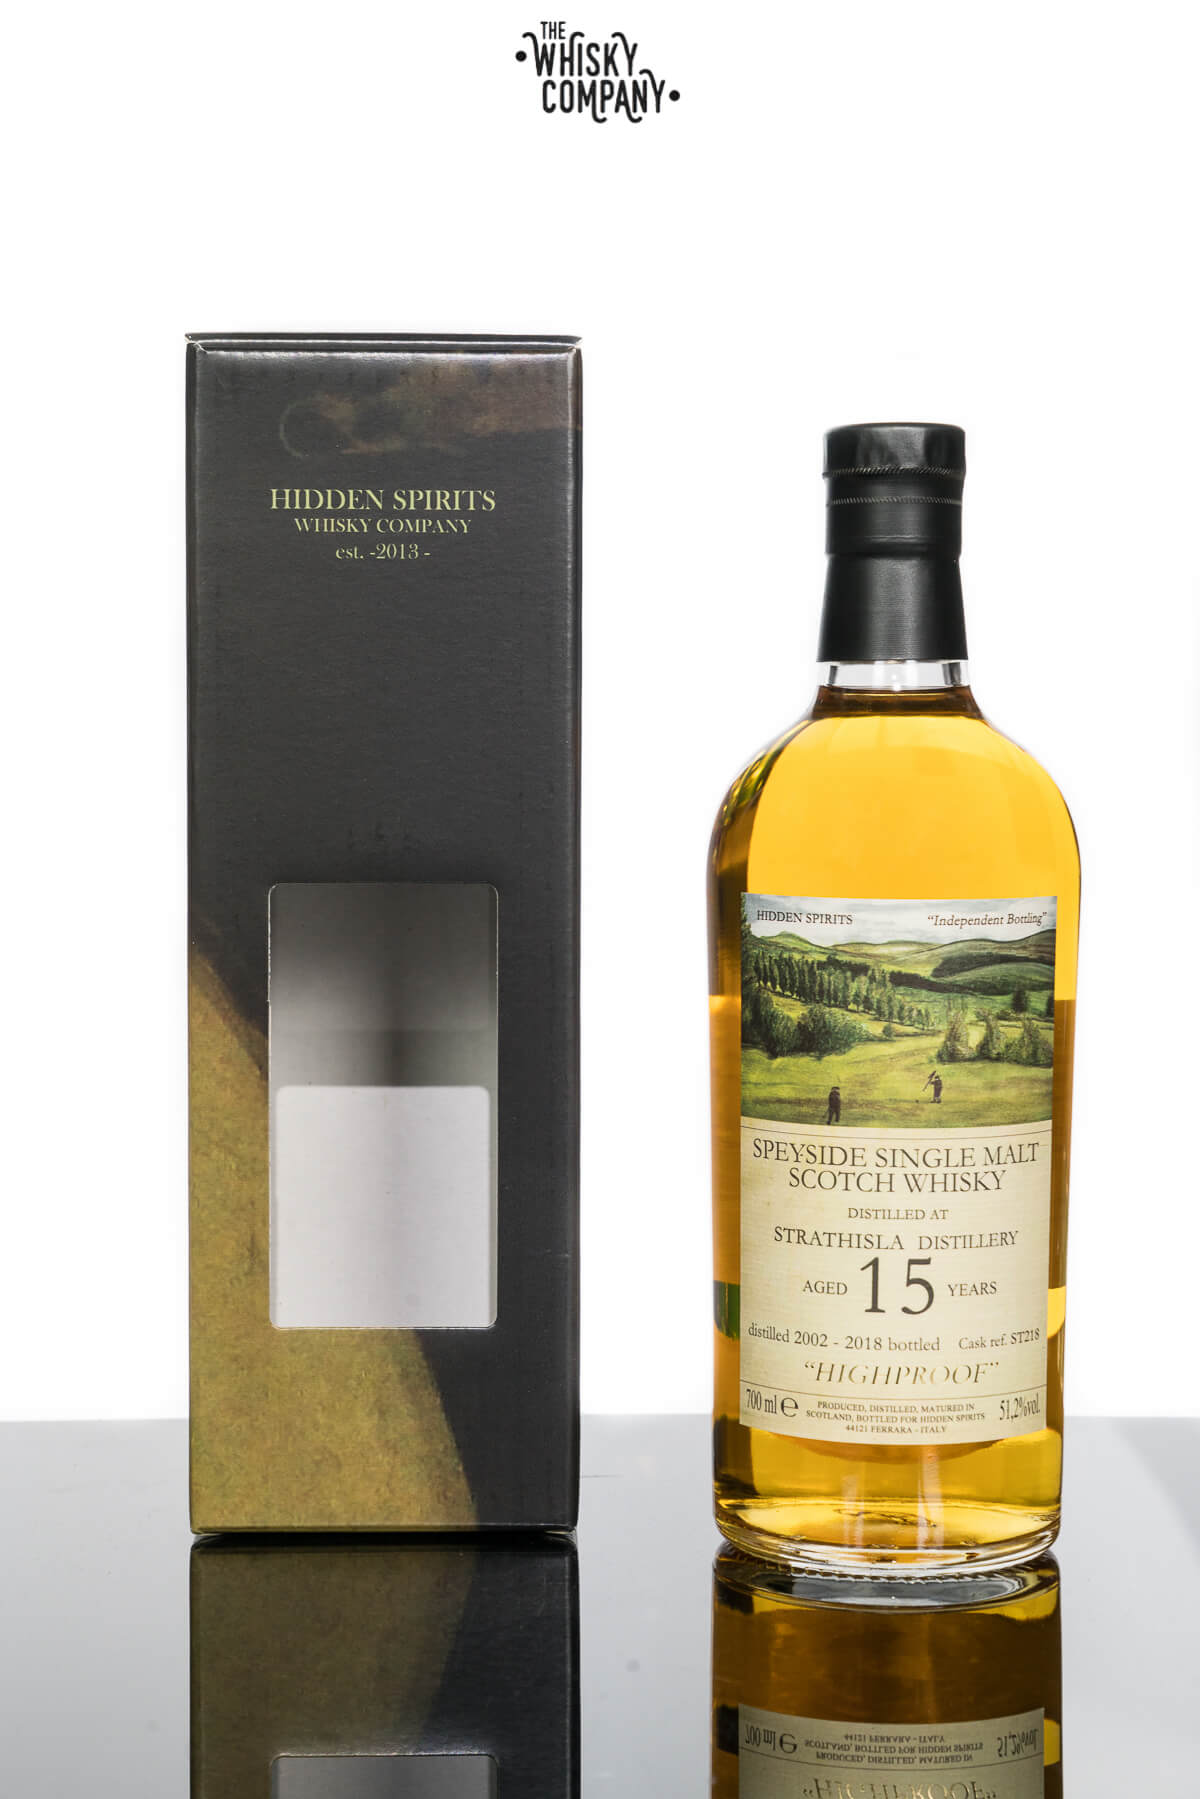 Hidden Spirits Strathisla 15 Years Old Speyside Single Malt Scotch Whisky (700ml)